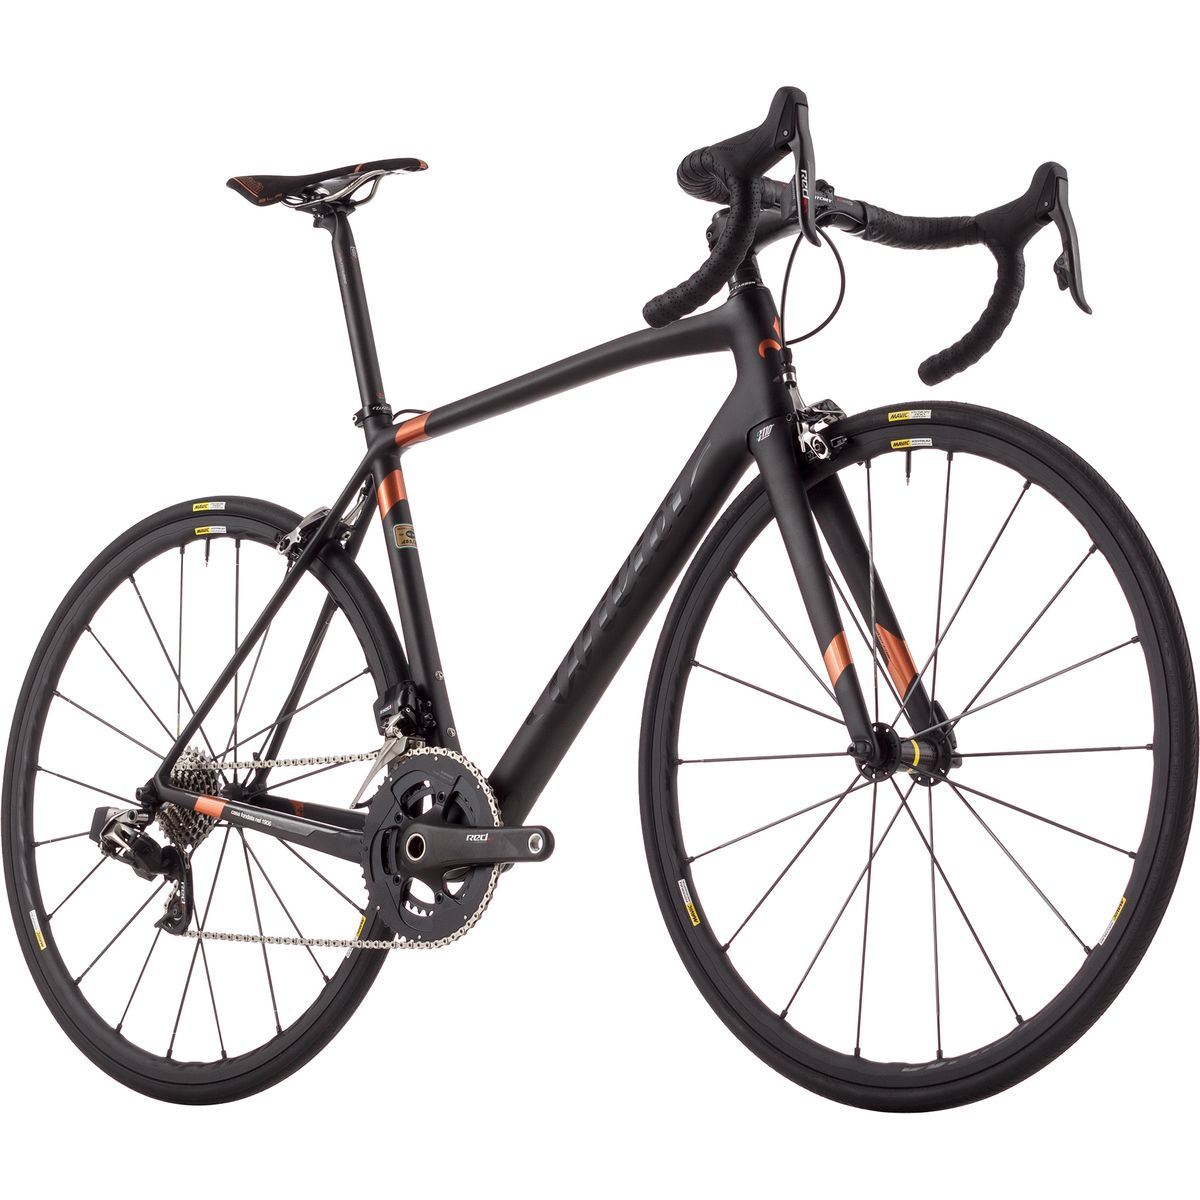 Wilier Zero 6 110 Sram Red Etap Complete Road Bike 2017